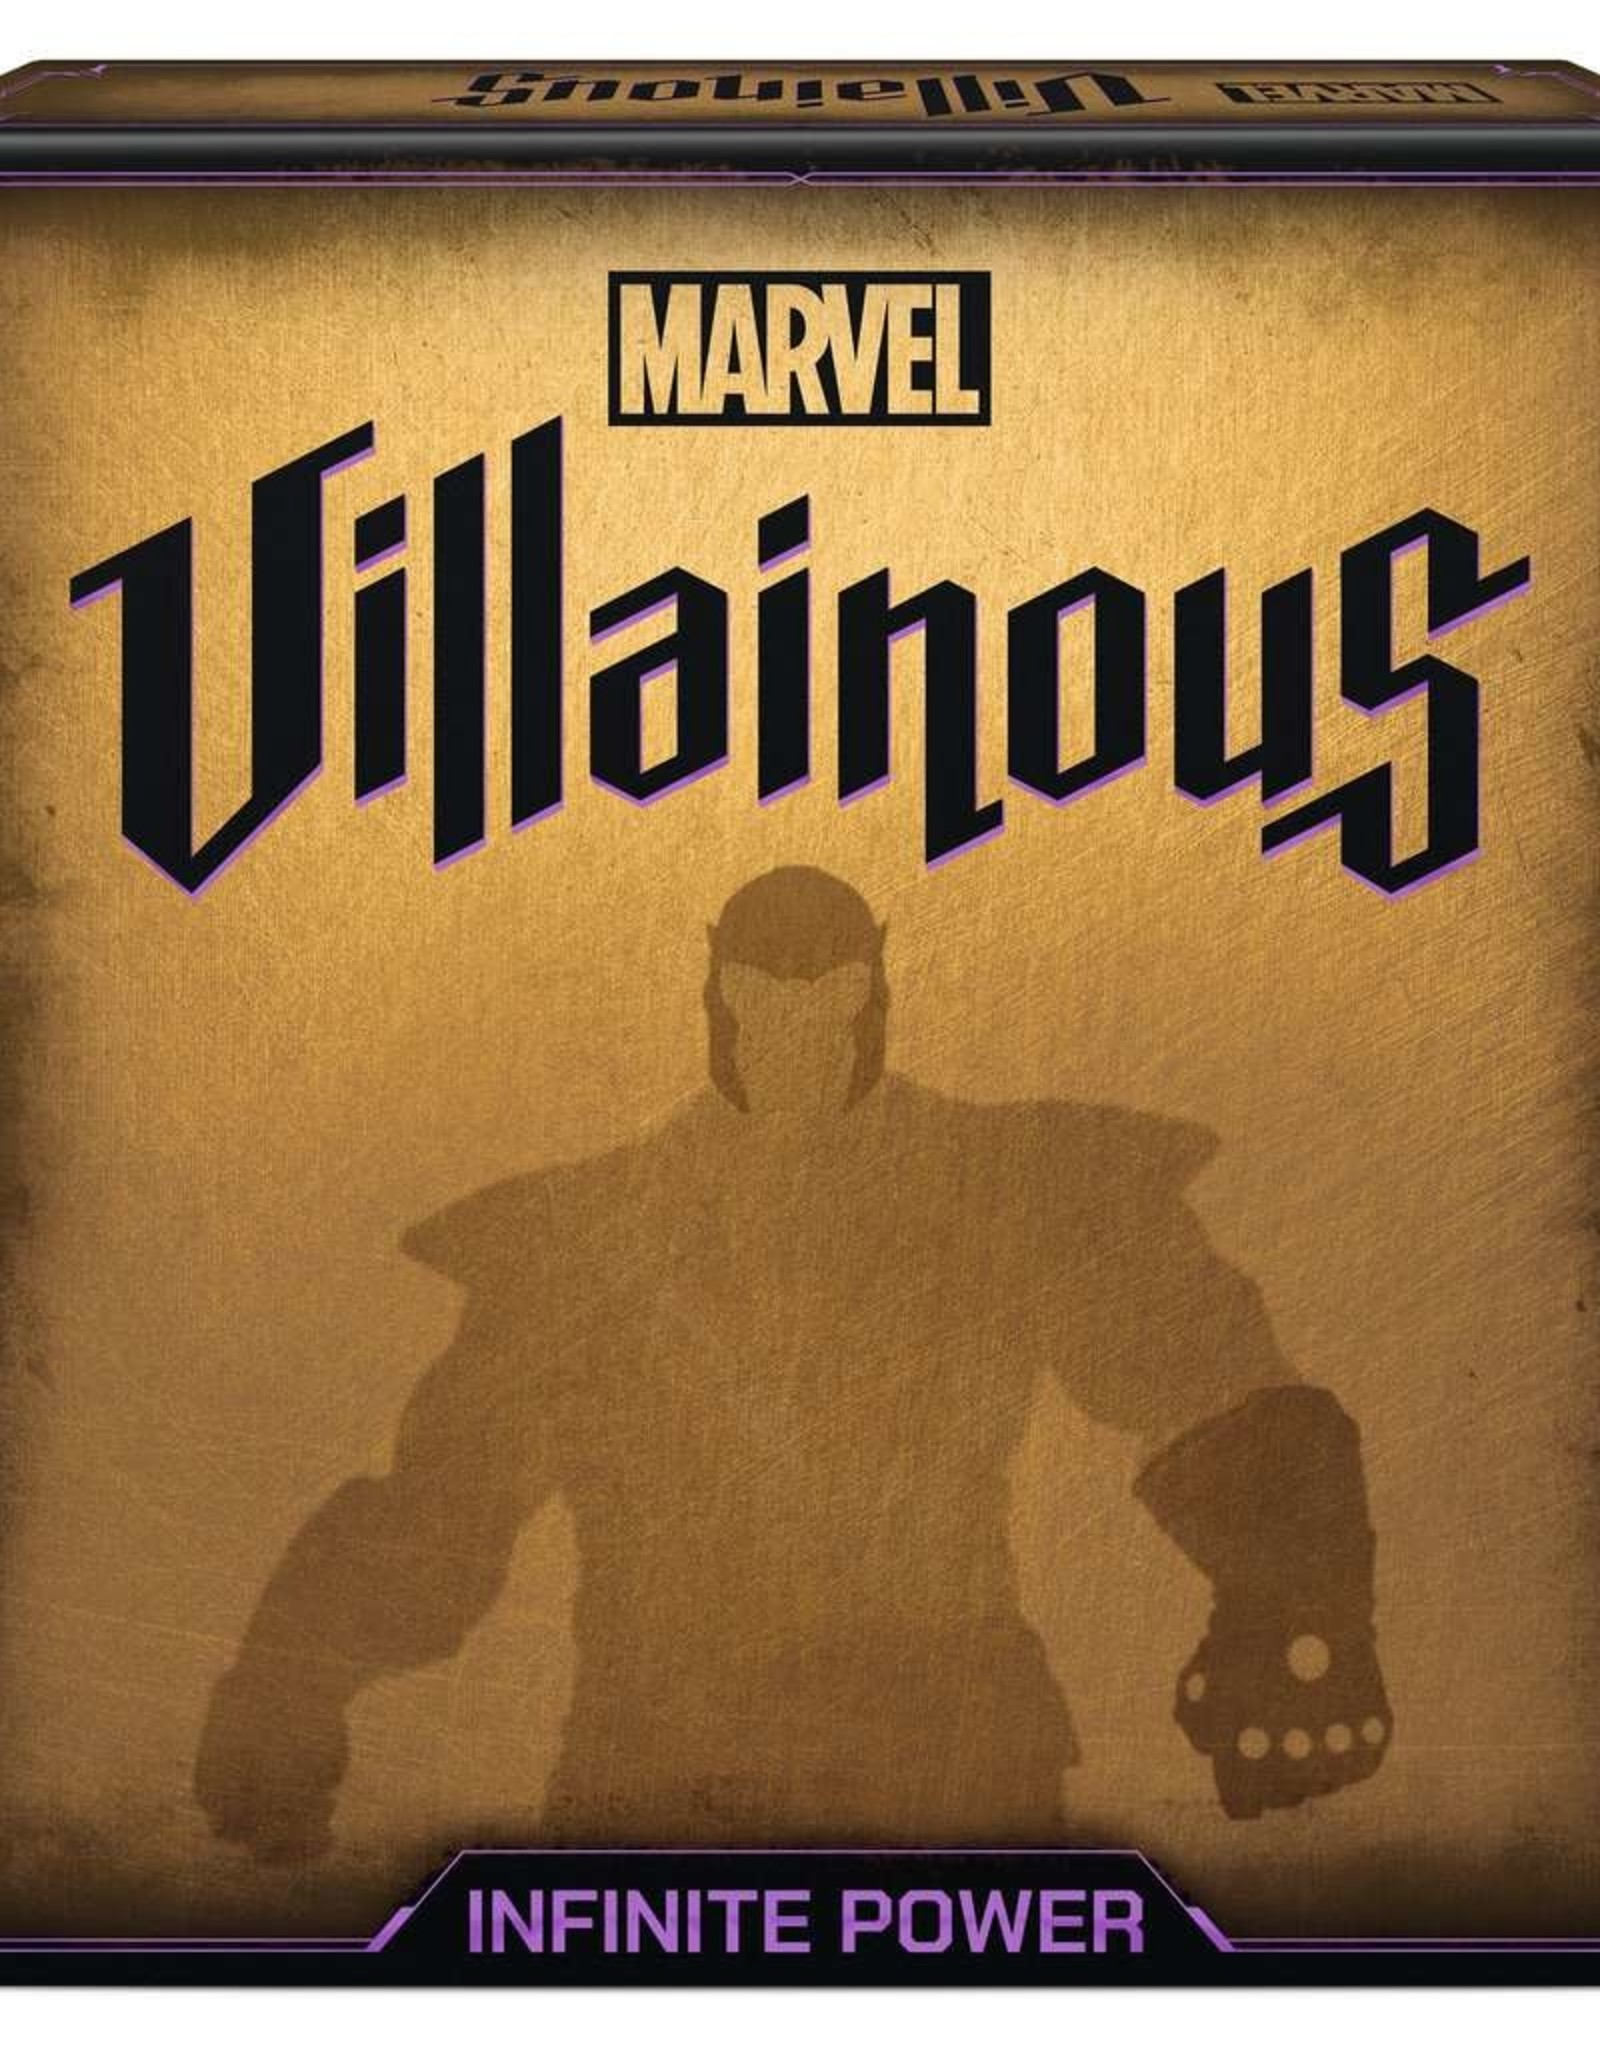 Villainous Marvel Villainous: Infinite Power